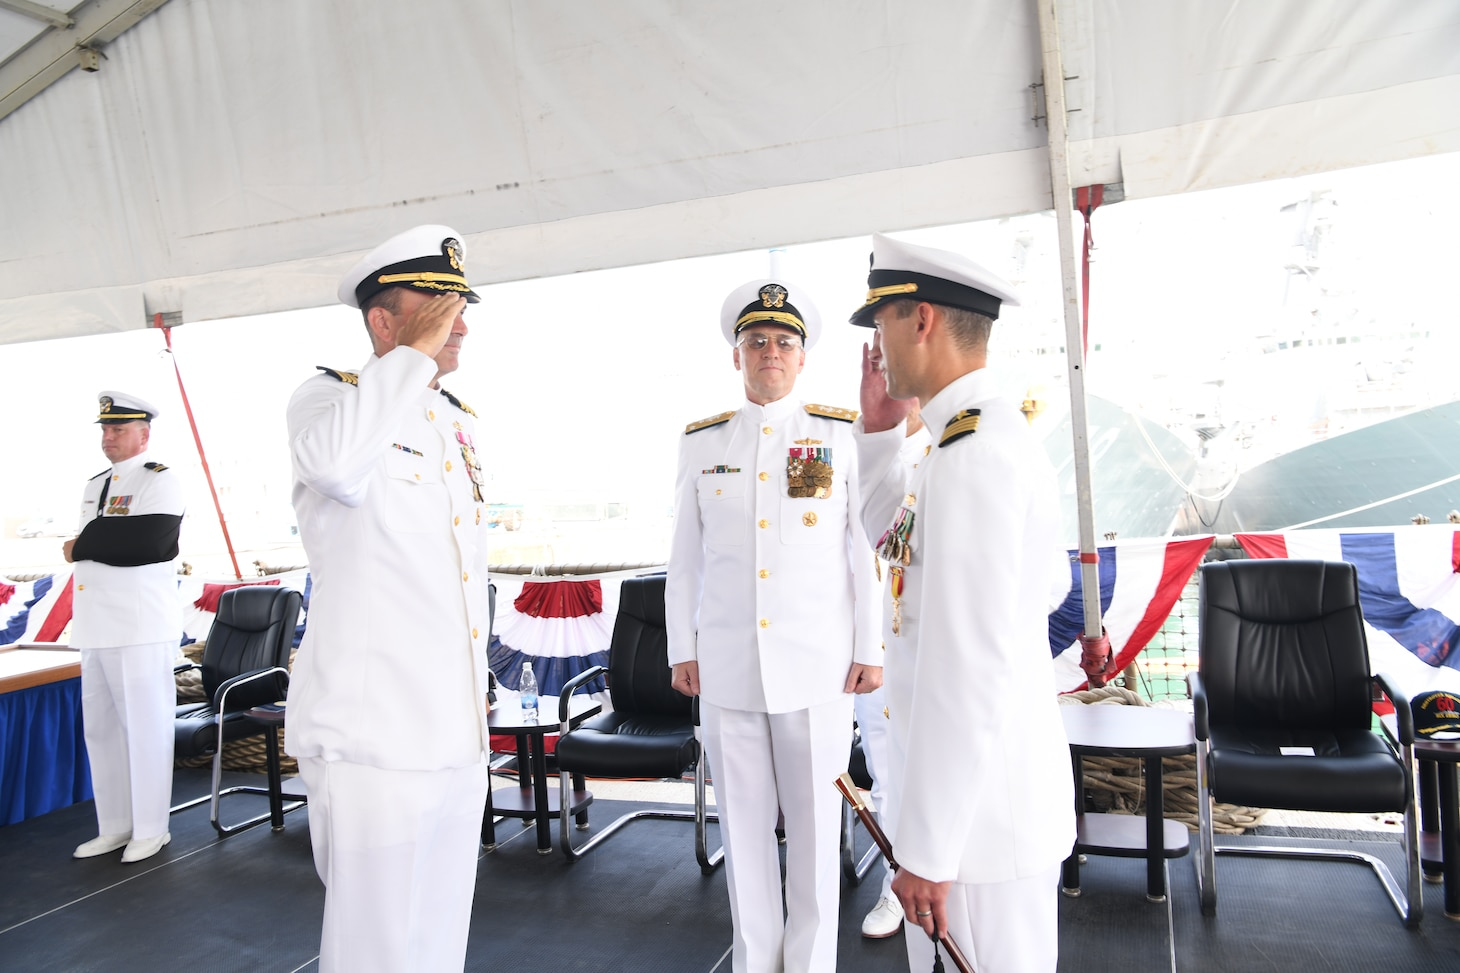 Capt. Kyle Gantt, left, assumes command as commodore, Commander, Task Force (CTF) 65 from Capt. Joseph Gagliano, right, while presided over by Vice Adm. Gene Black, commander, U.S. Sixth Fleet, center, during a change of command ceremony at Naval Station Rota, Aug.10, 2019. CTF 65 and DESRON 60, headquartered in Rota, Spain, overseas the forward-deployed forces of U.S. Sixth Fleet's area of operation in support of regional allies and partners as well as U.S. national security interests in Europe and Africa.